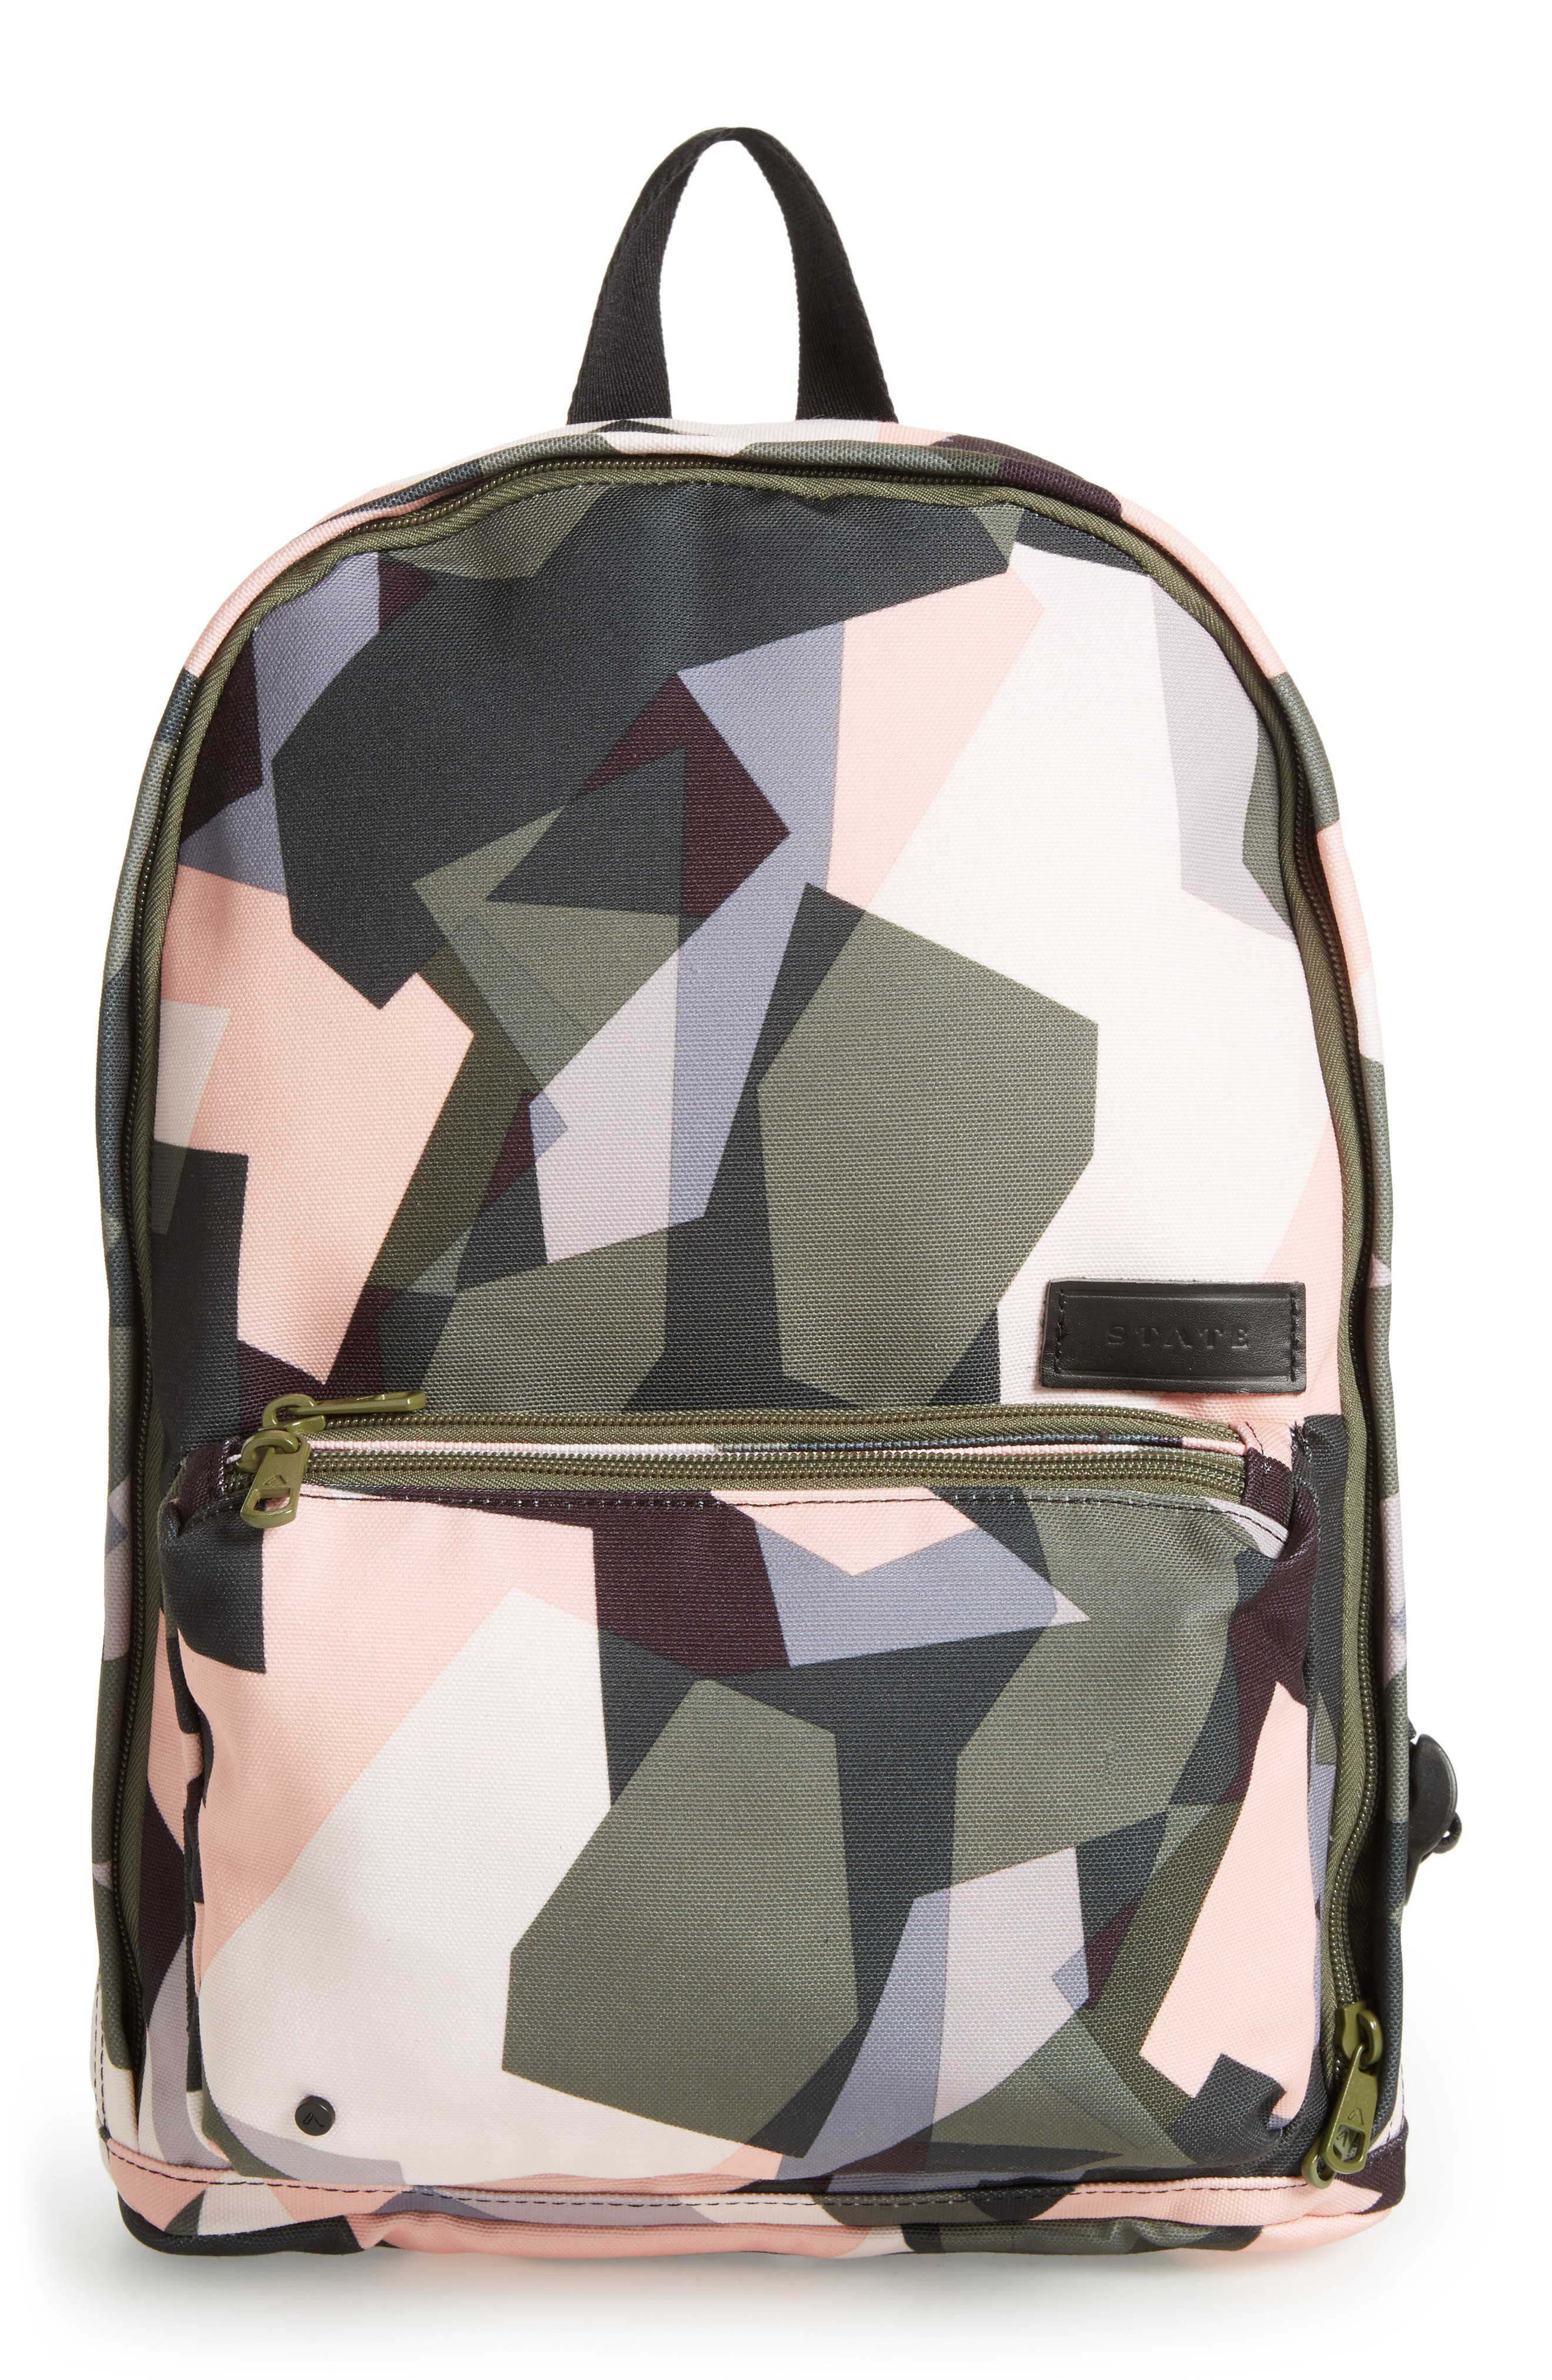 STATE Bags Kensington Slim Lorimer Backpack